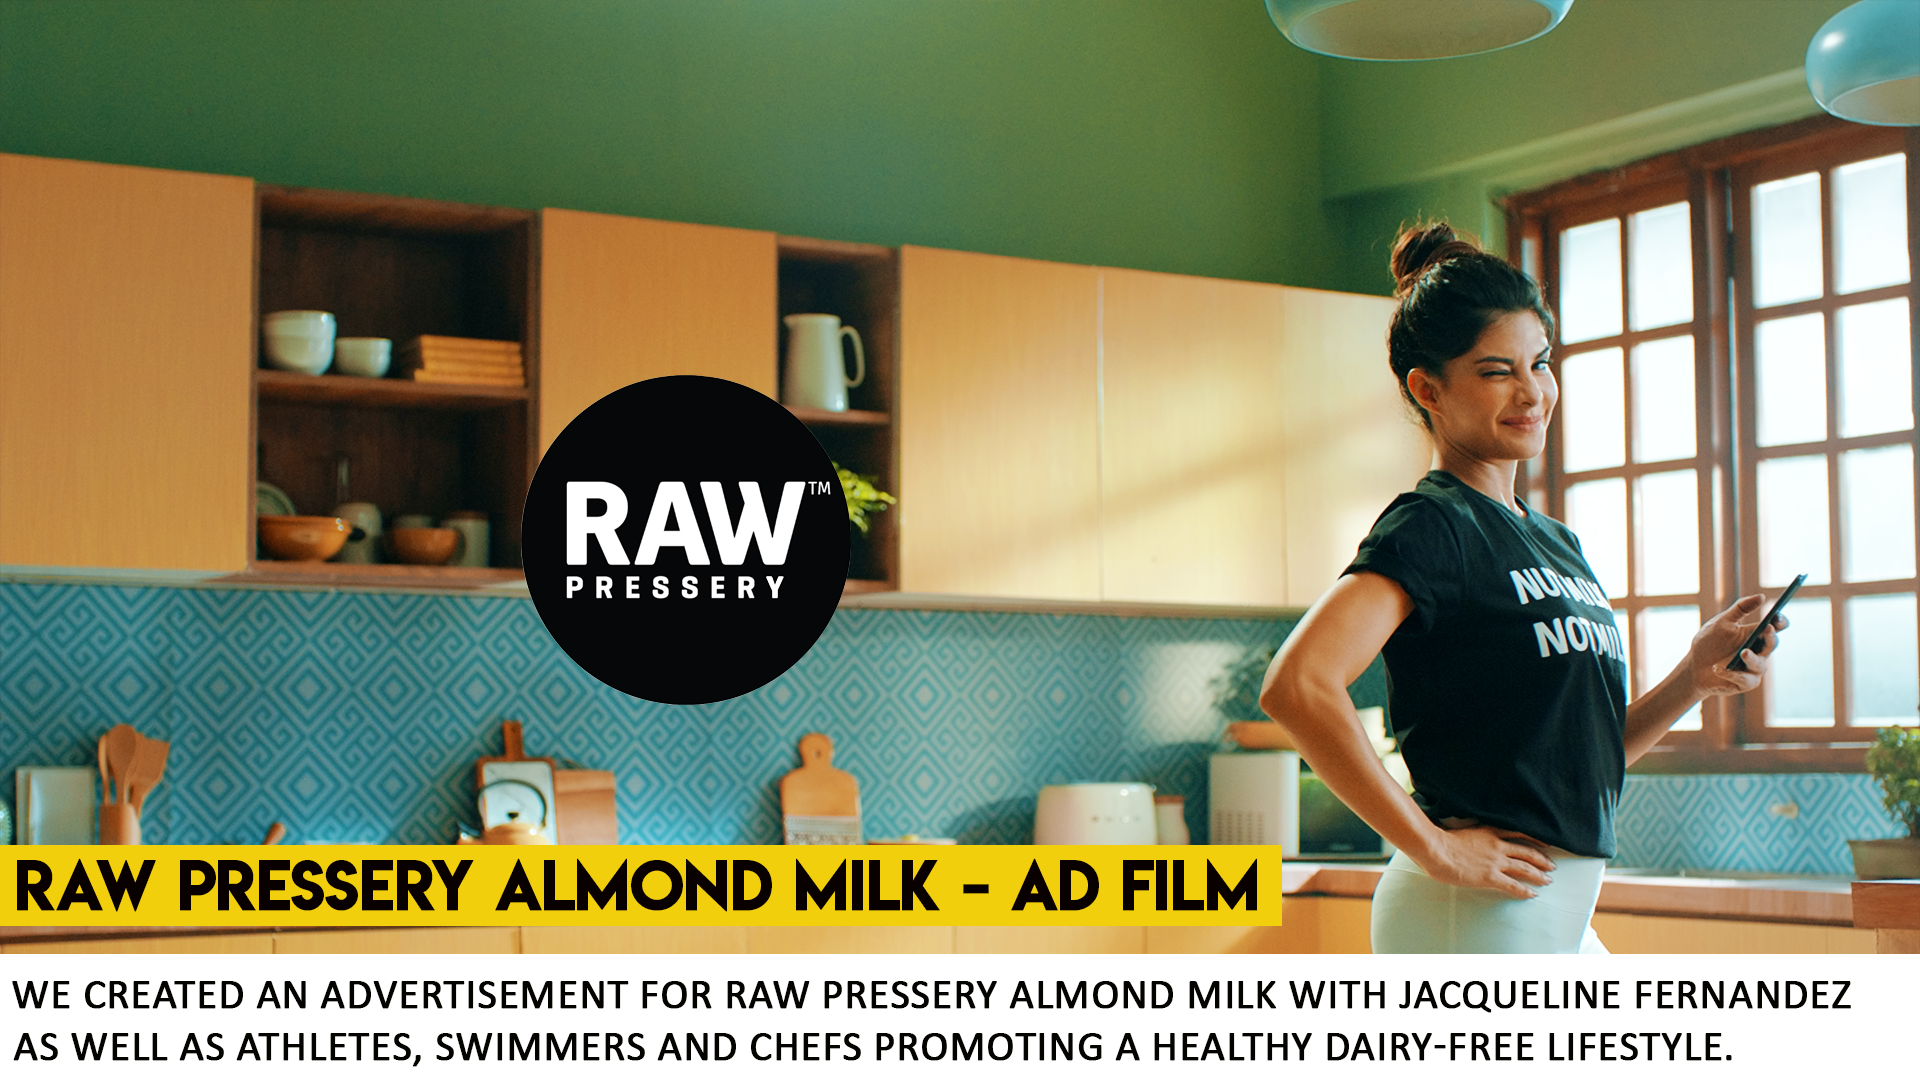 Raw Pressery Almond Milk Commercial